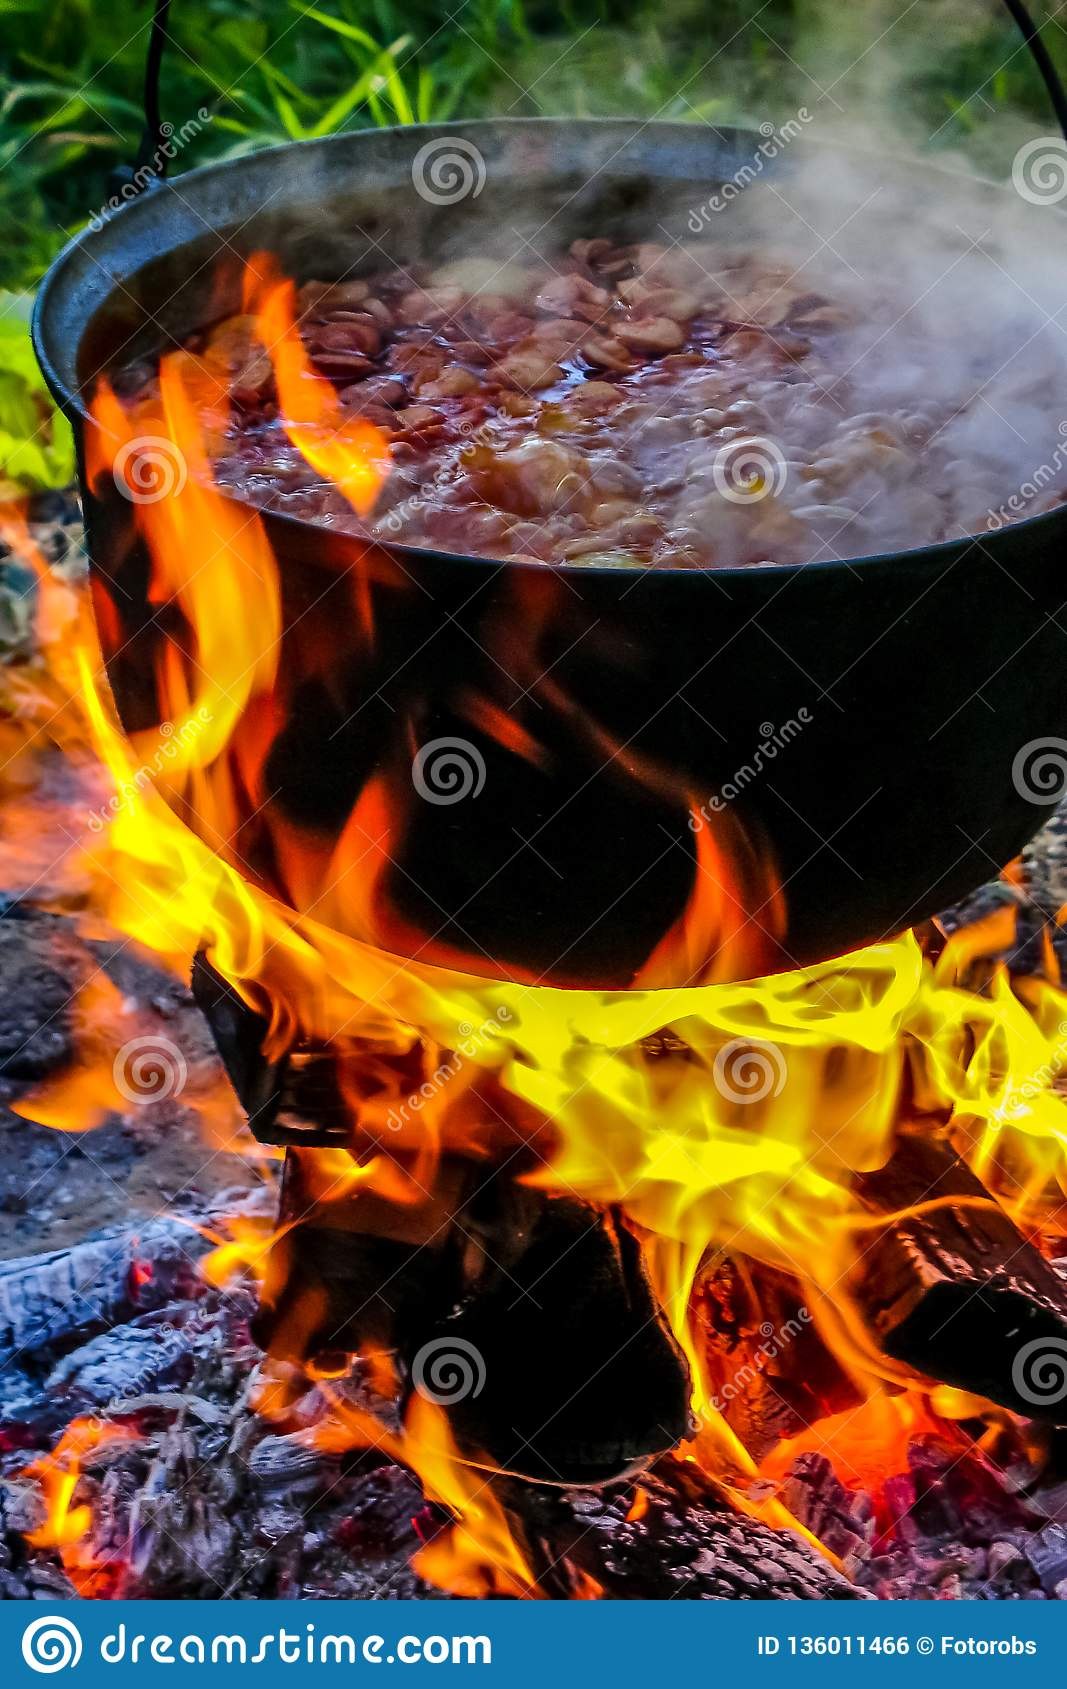 Cooking Soup In A Pot On Campfire Stock Photo Image Of Flame Caldron 136011466